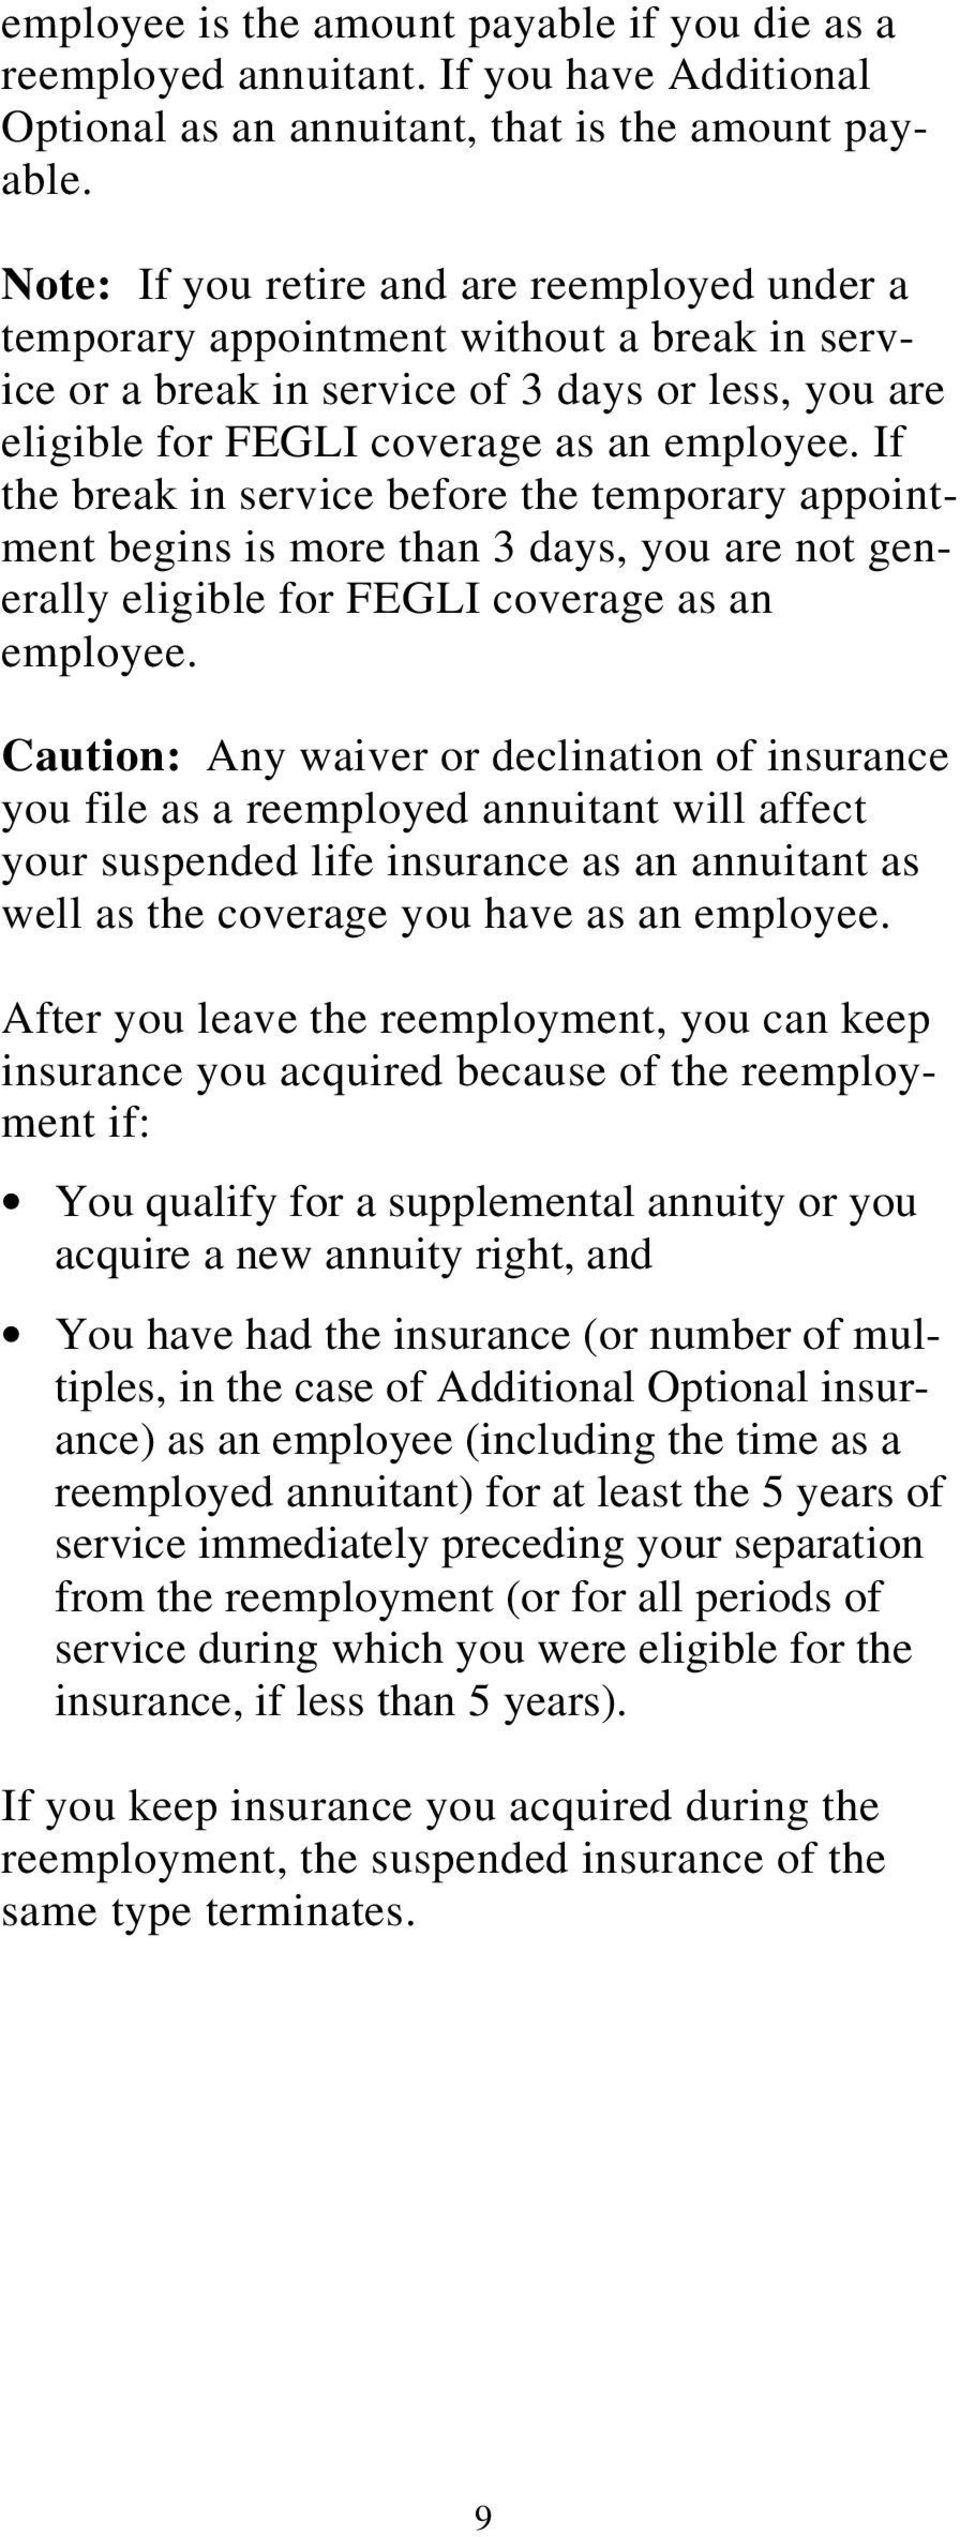 If the break in service before the temporary appointment begins is more than 3 days, you are not generally eligible for FEGLI coverage as an employee.